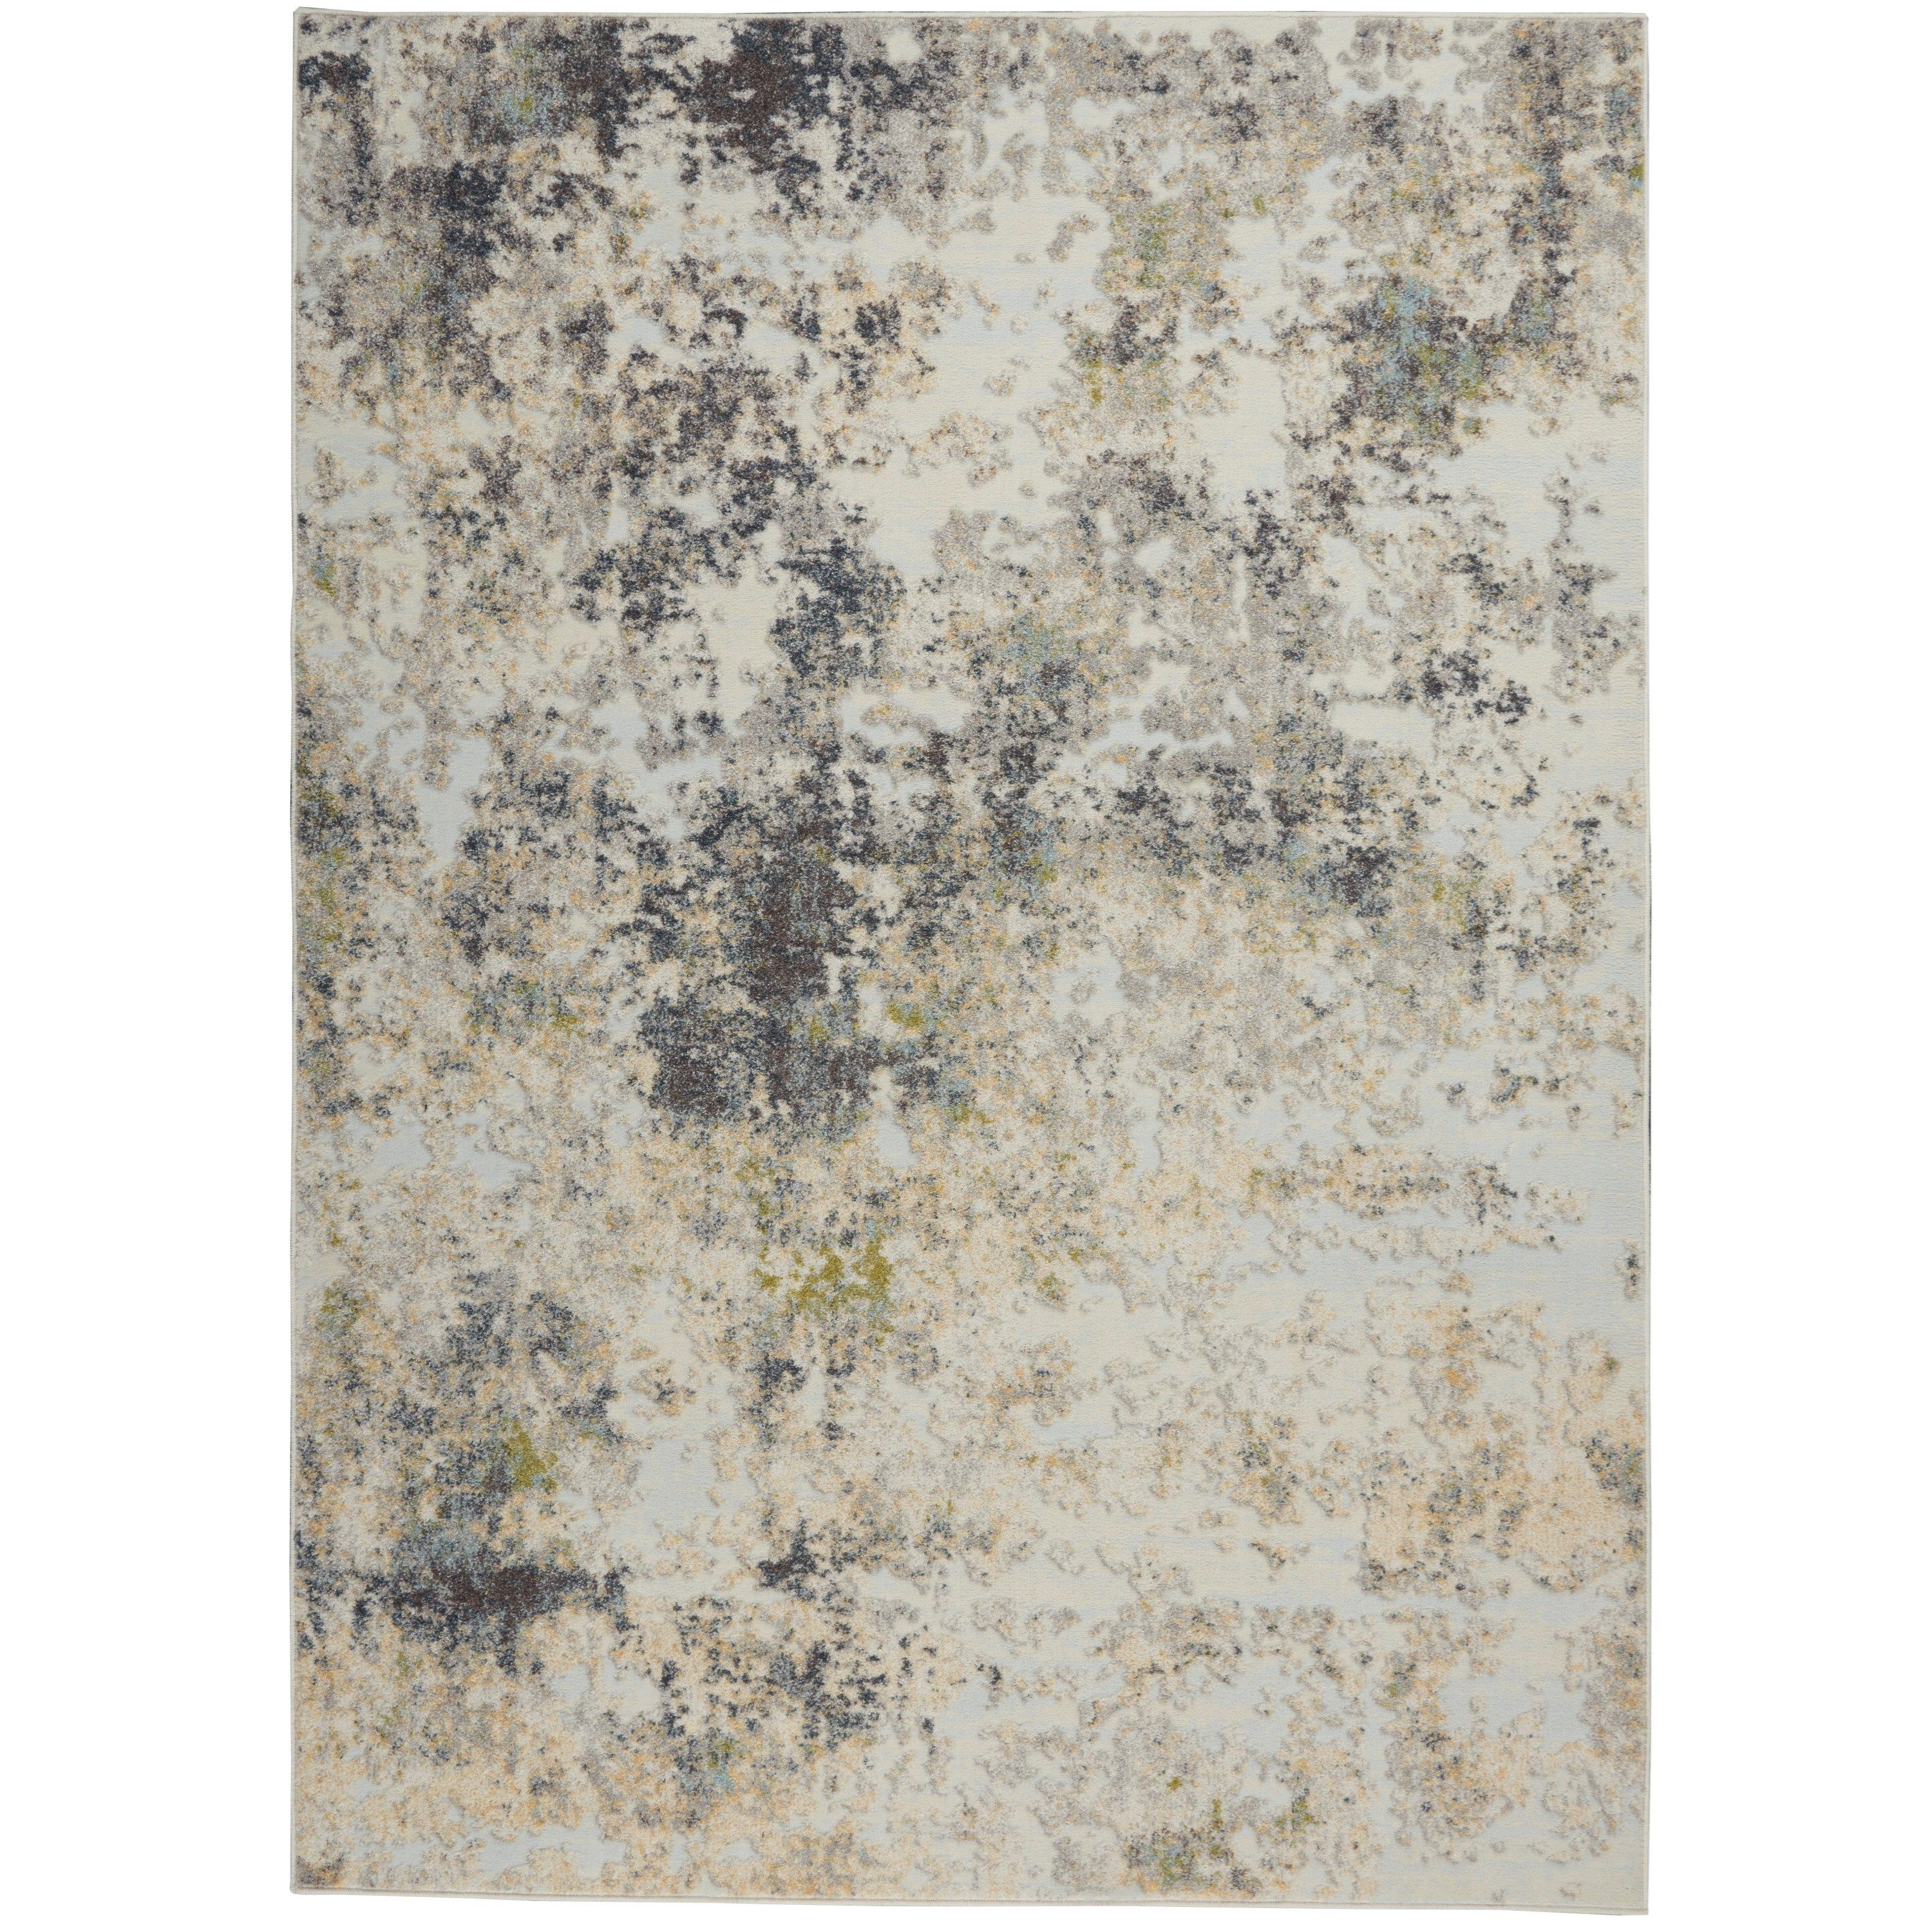 Trance 2020 4' x 6' Rug by Nourison at Home Collections Furniture